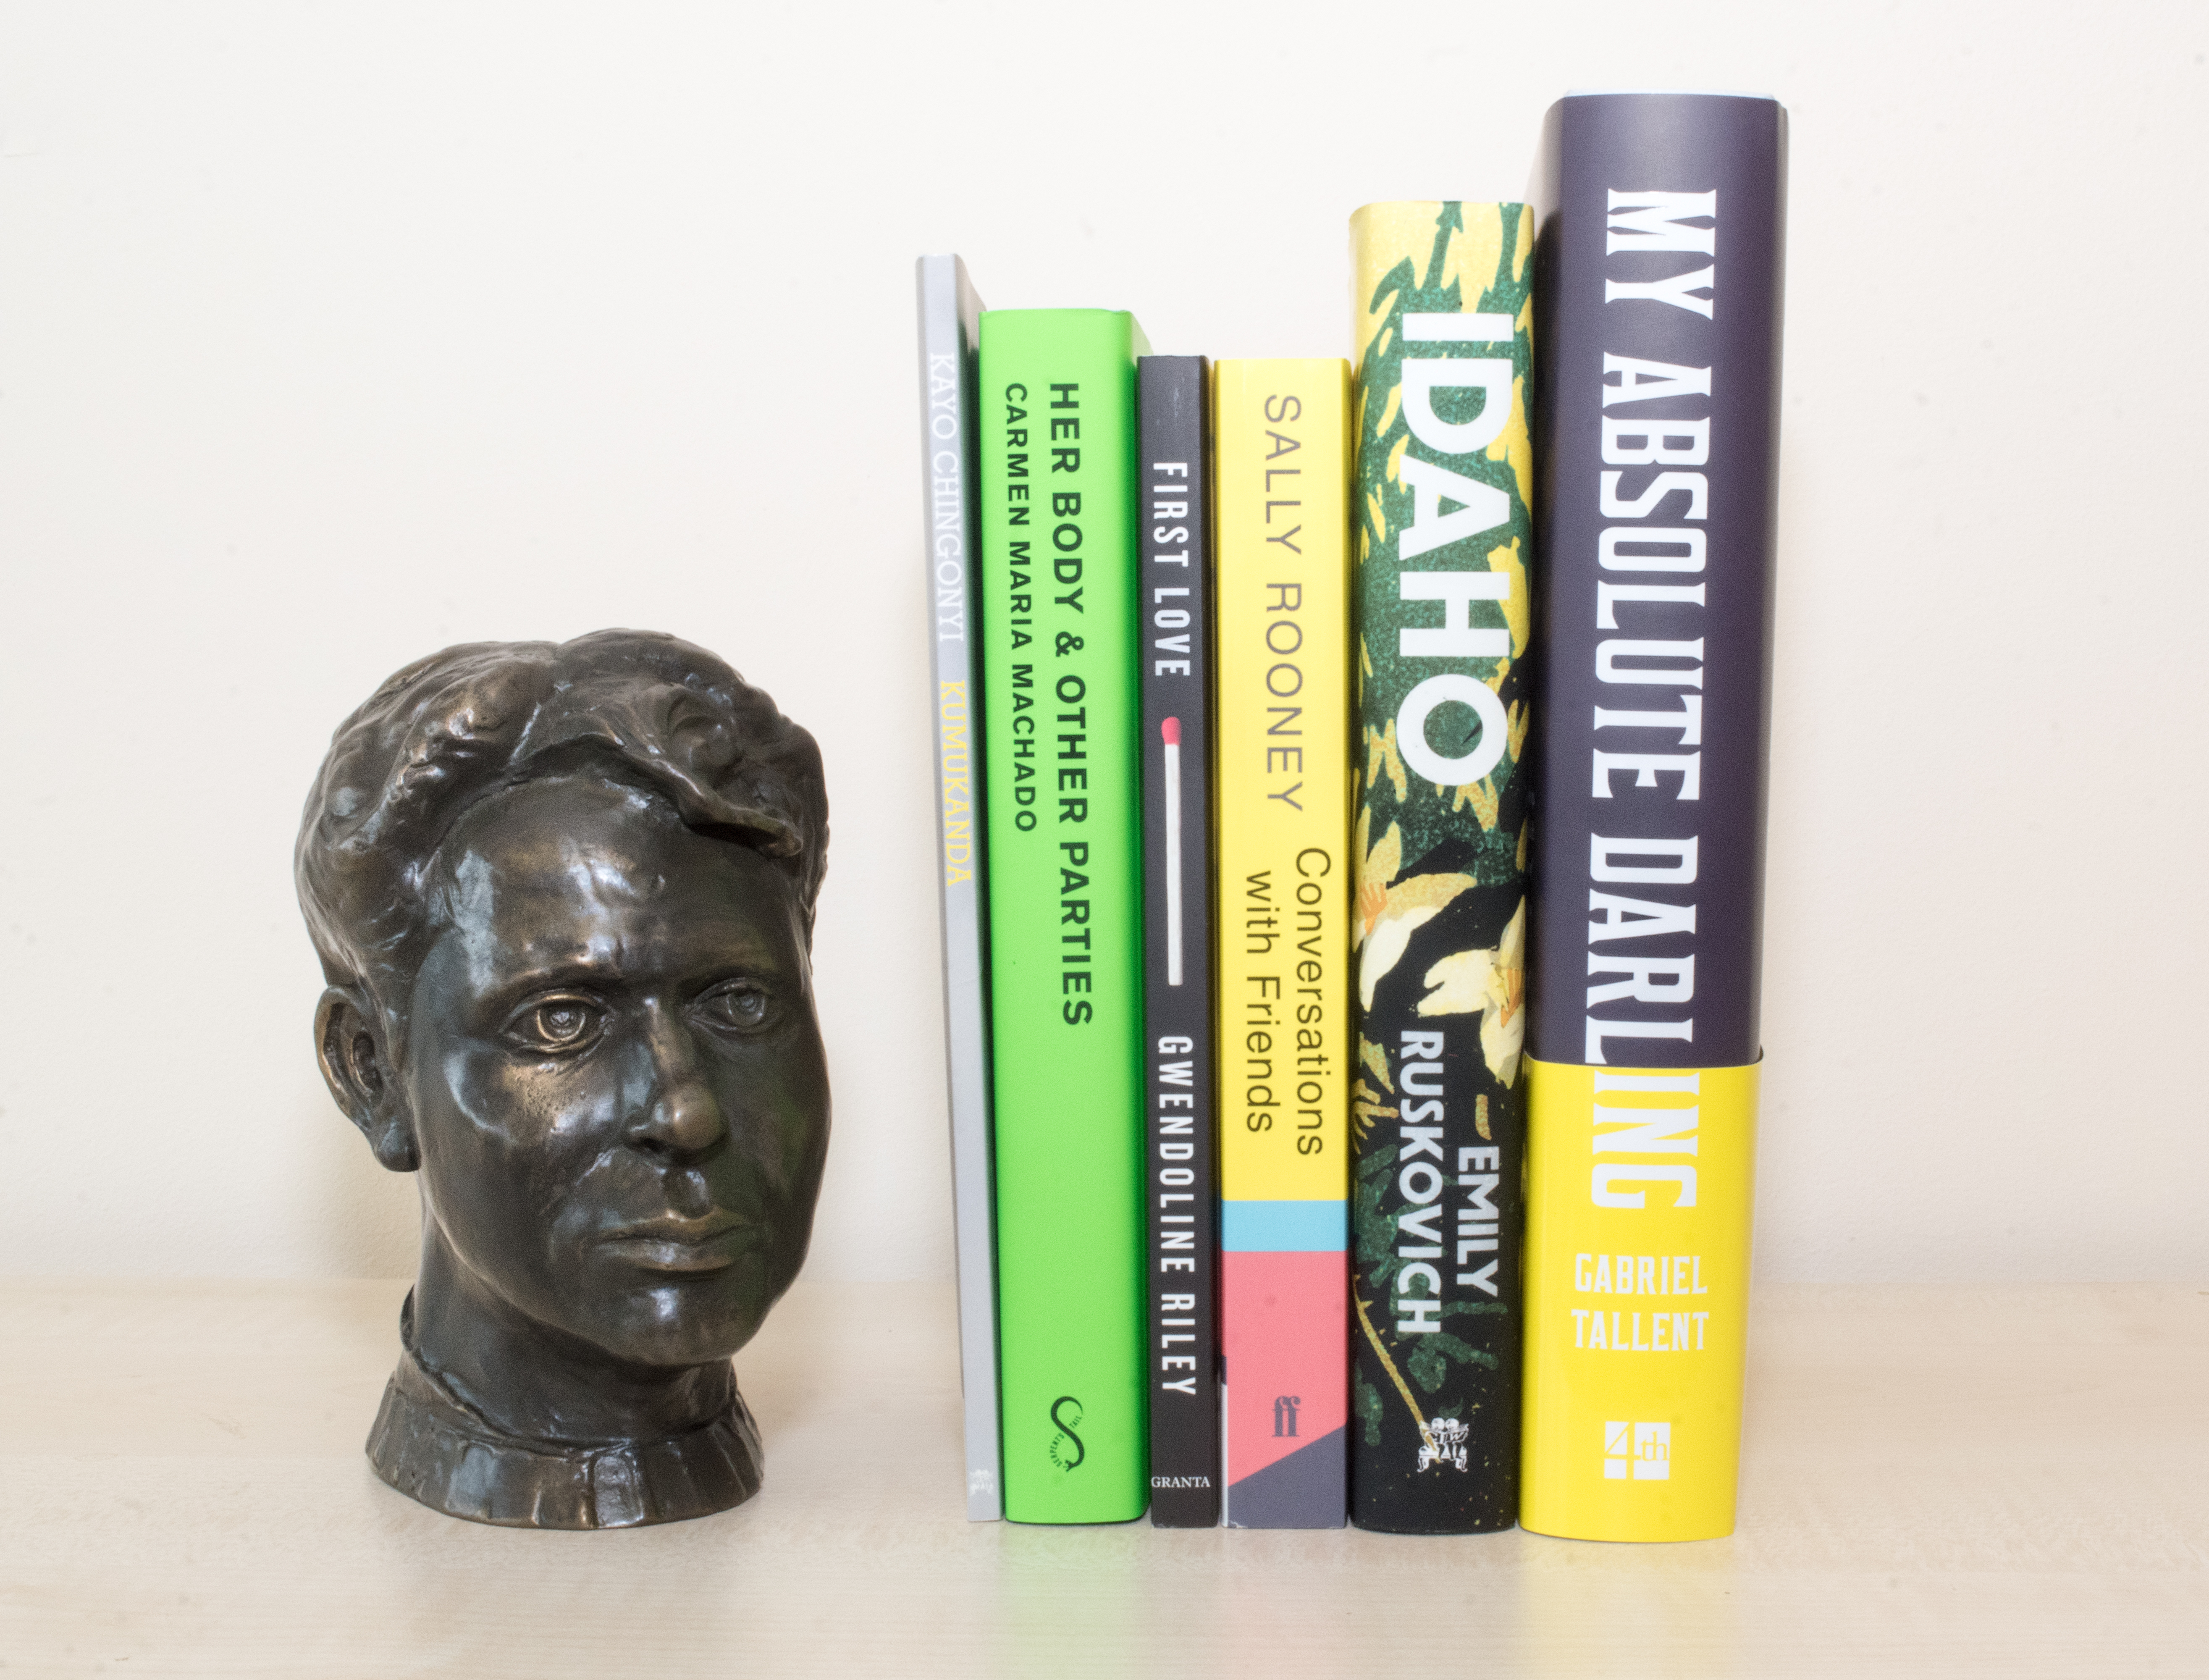 International Dylan Thomas Prize 2018 shortlist